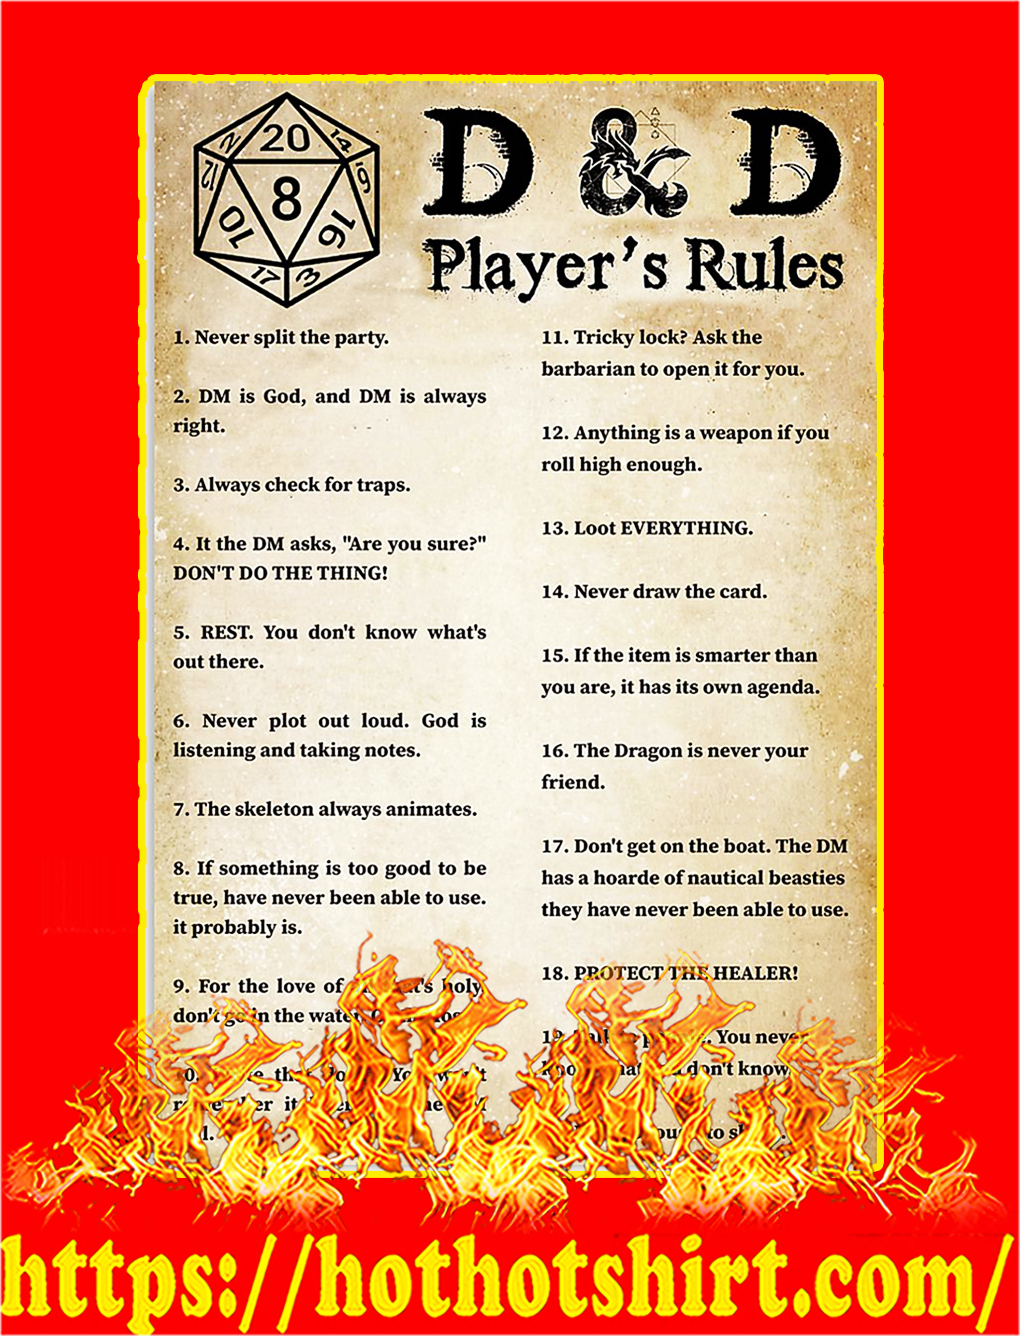 D&D player's rules poster - A3